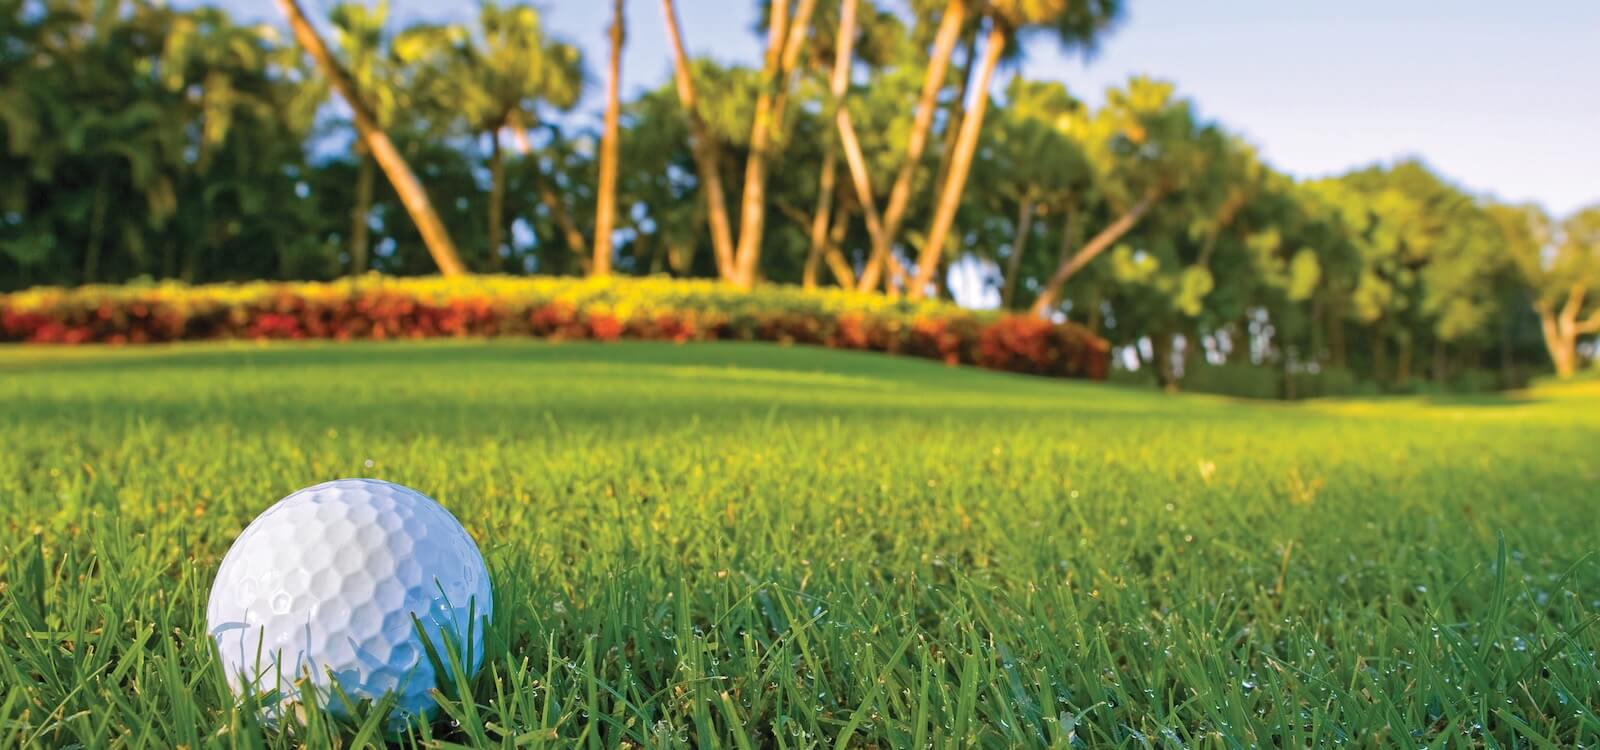 MustDo.com | Must Do Visitor Guides Naples, Florida top 10 golf courses to play in Naples, Florida.